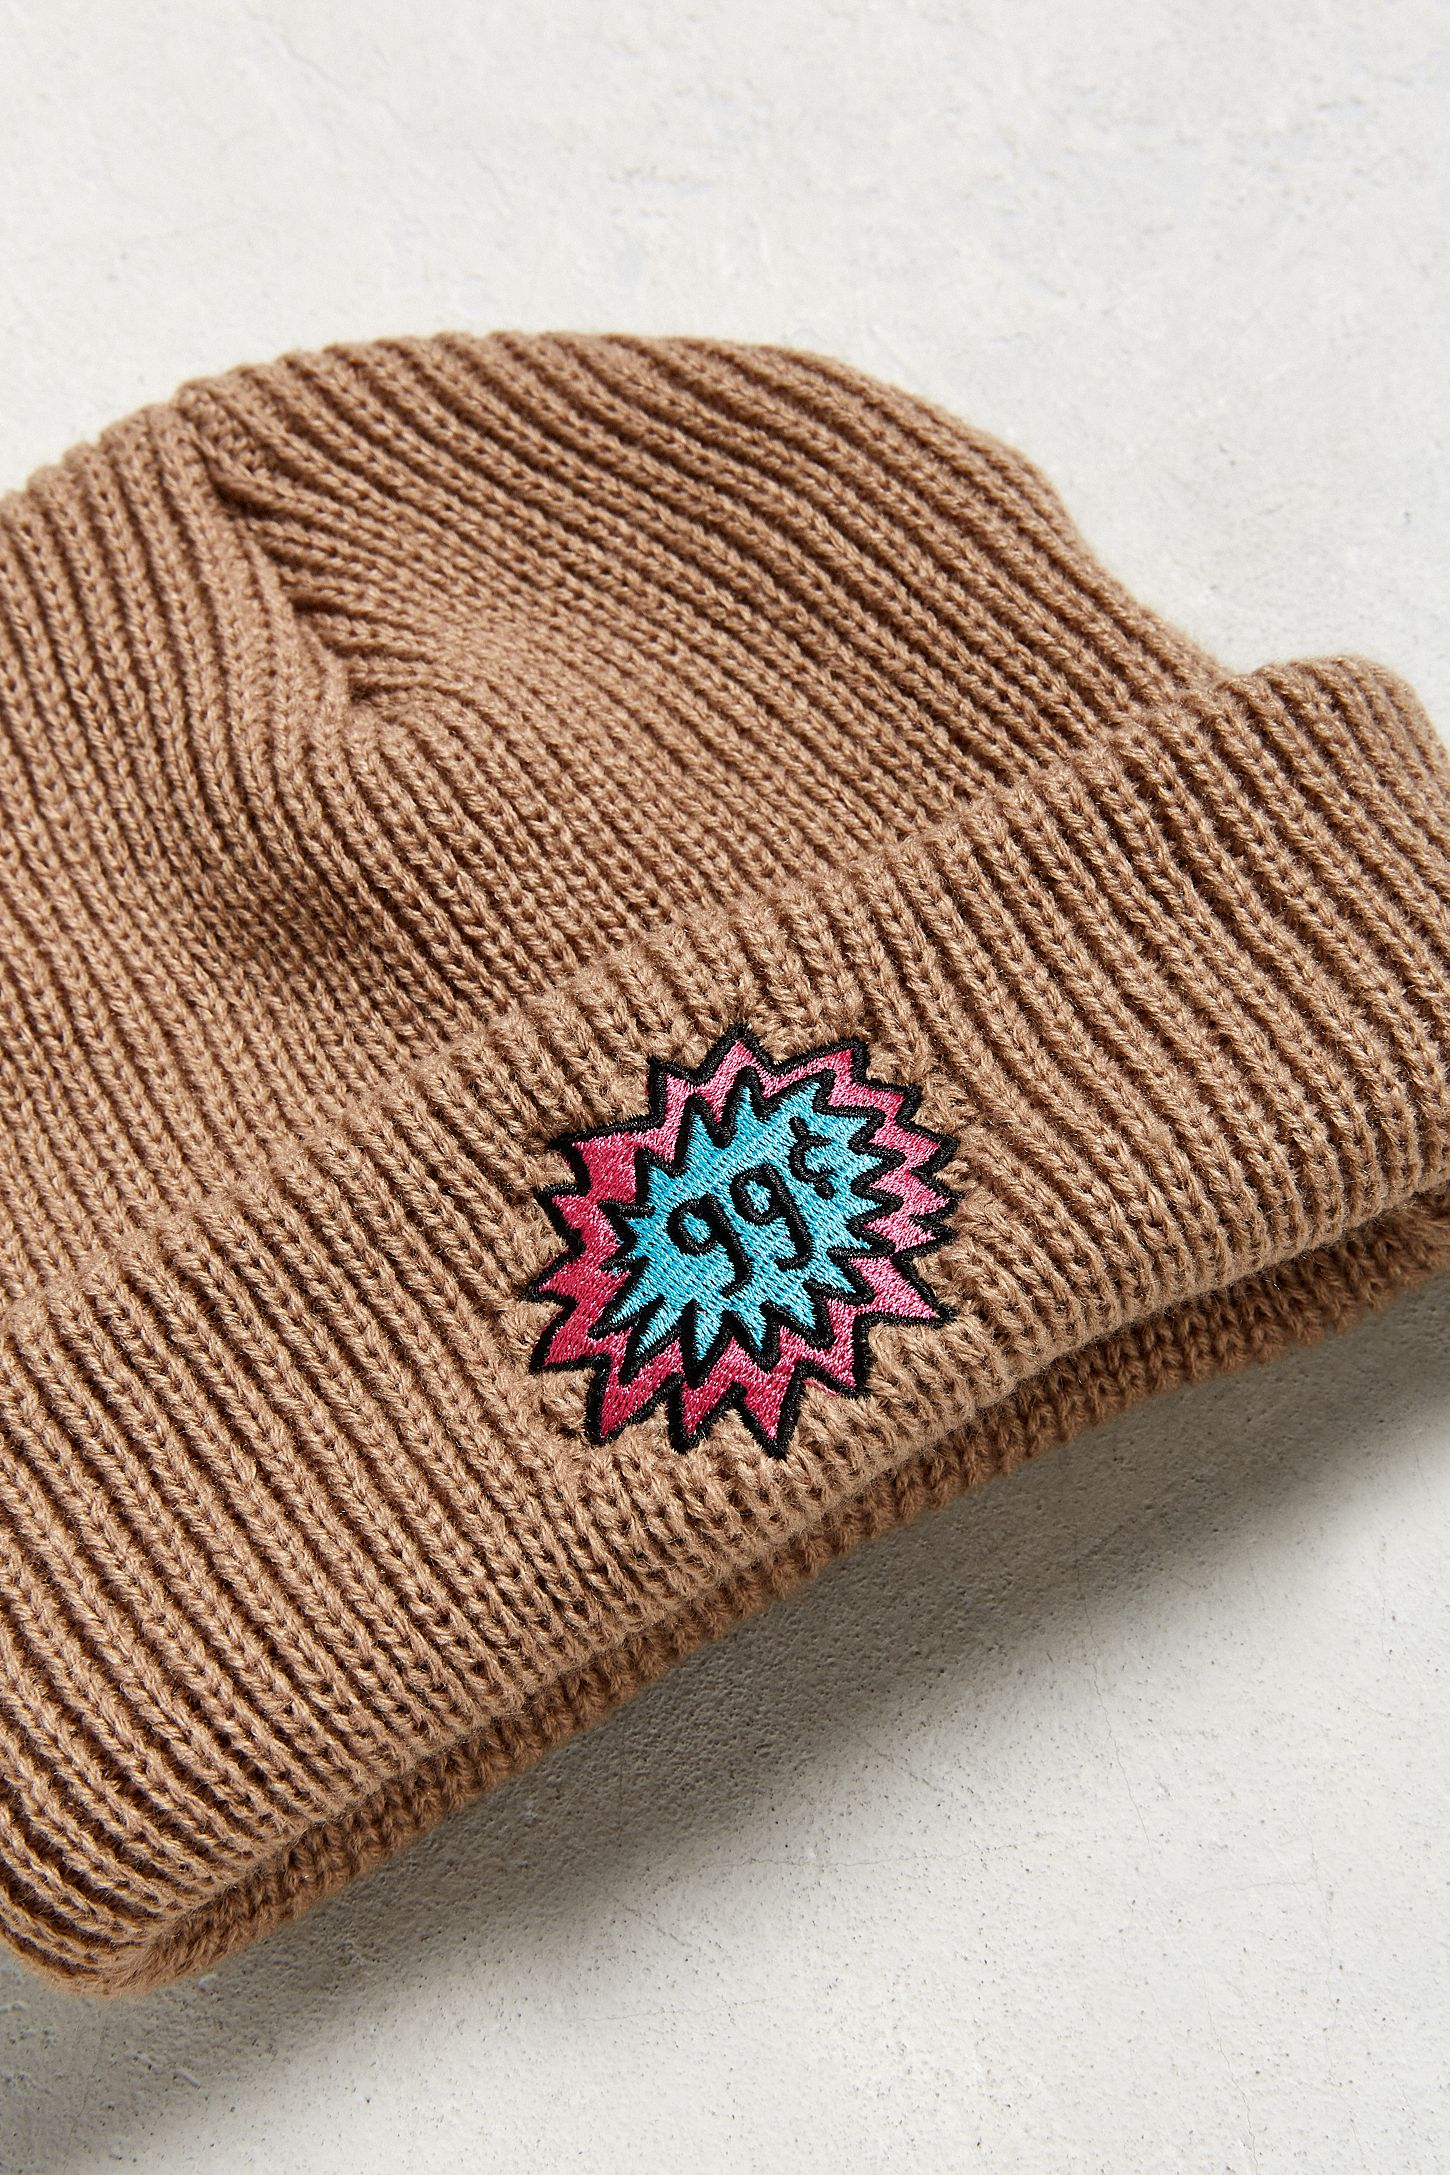 Managers Special Embroidered 99 Cent Beanie